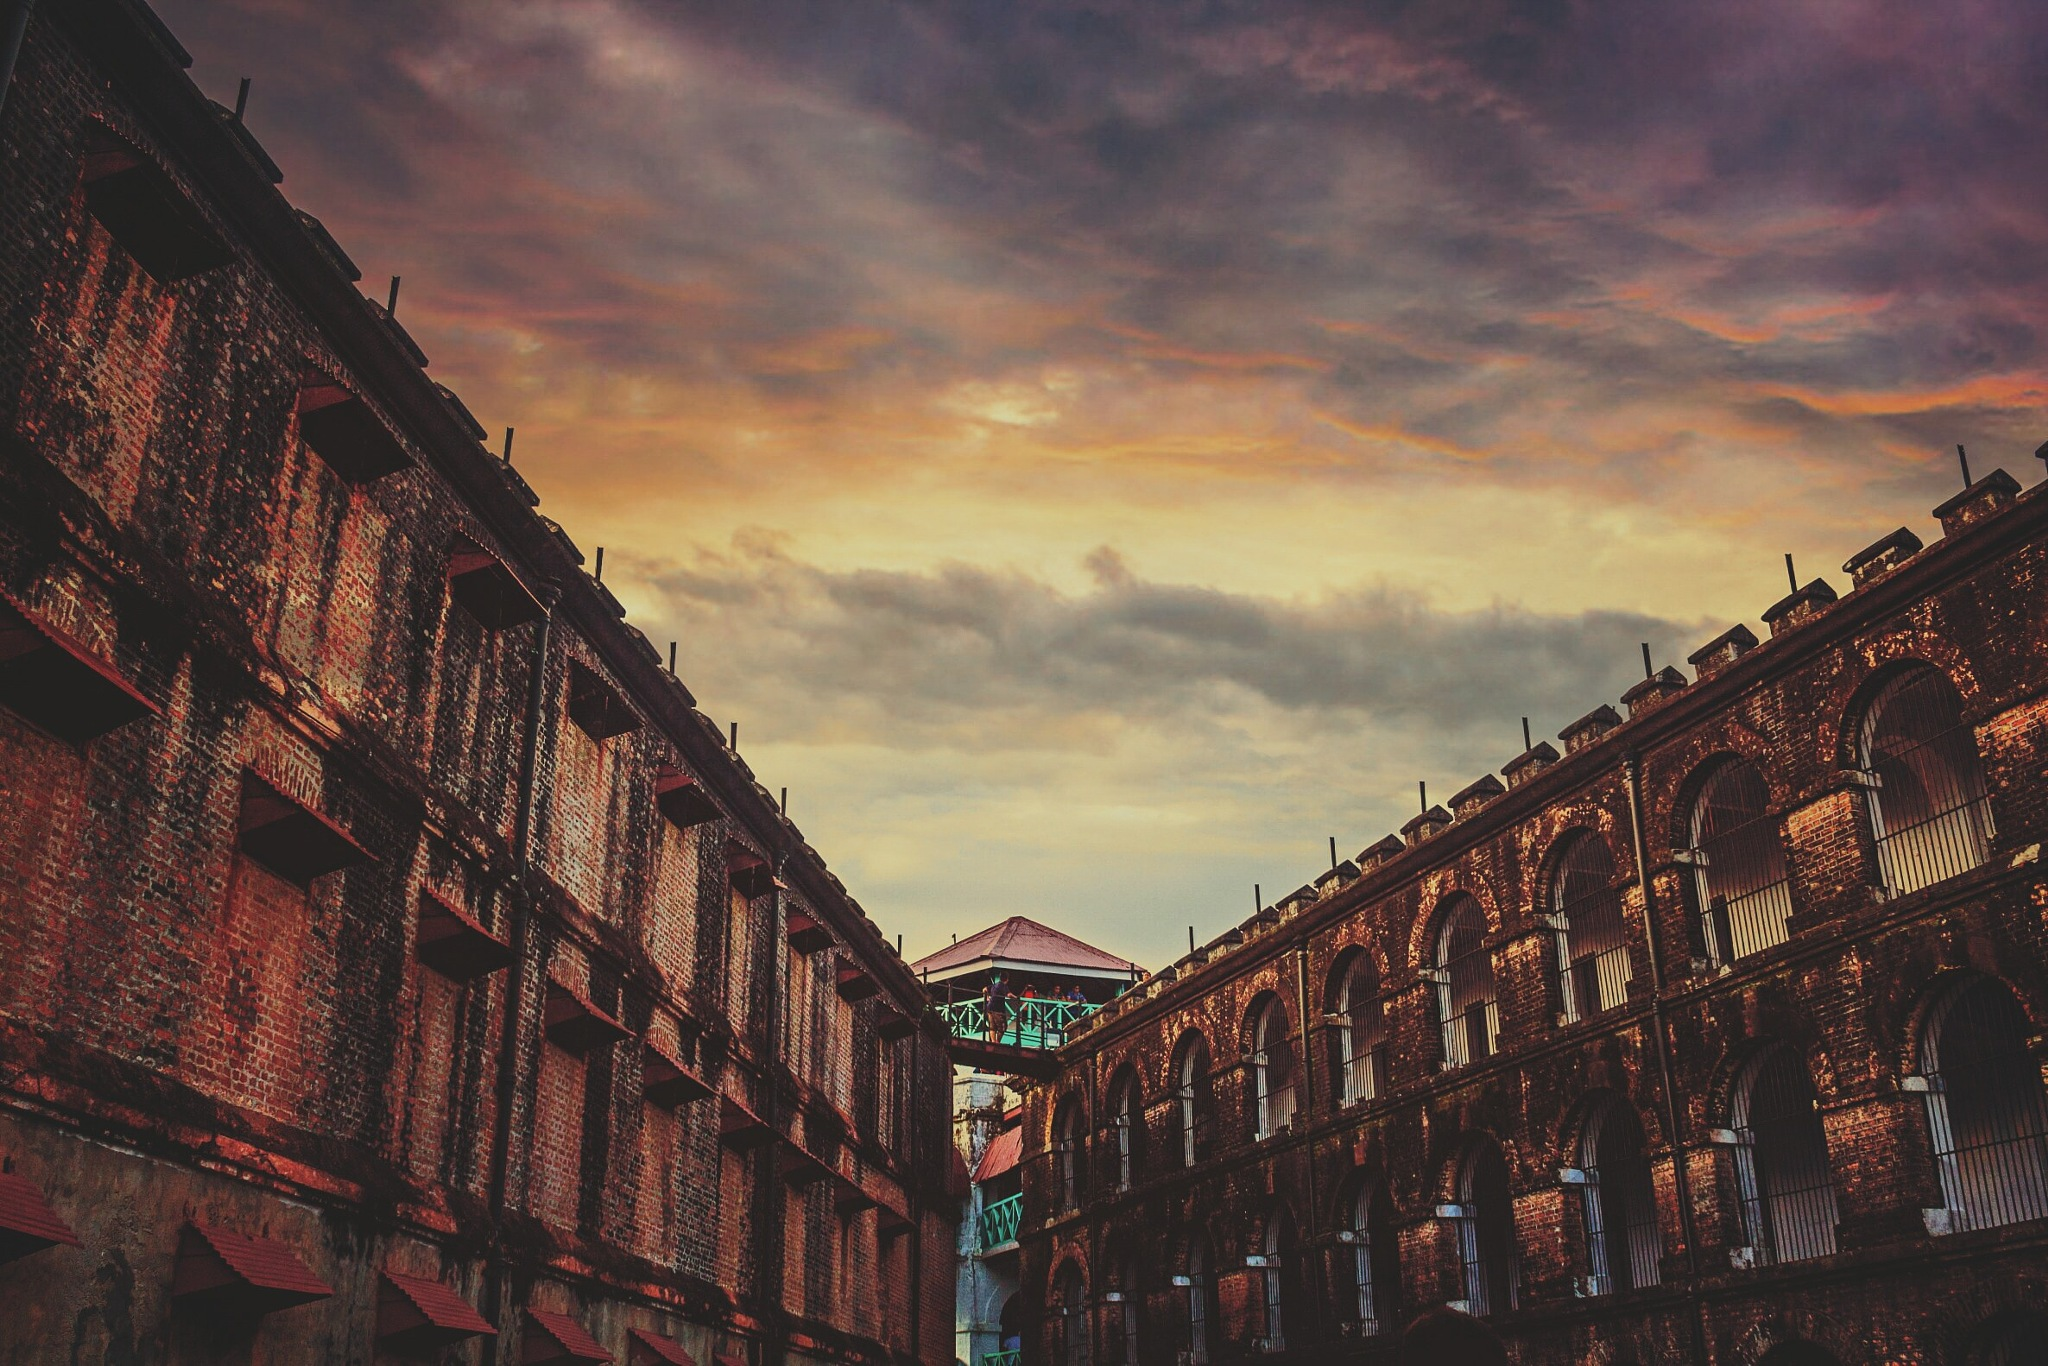 cellular jail by Diptangshu Chaki